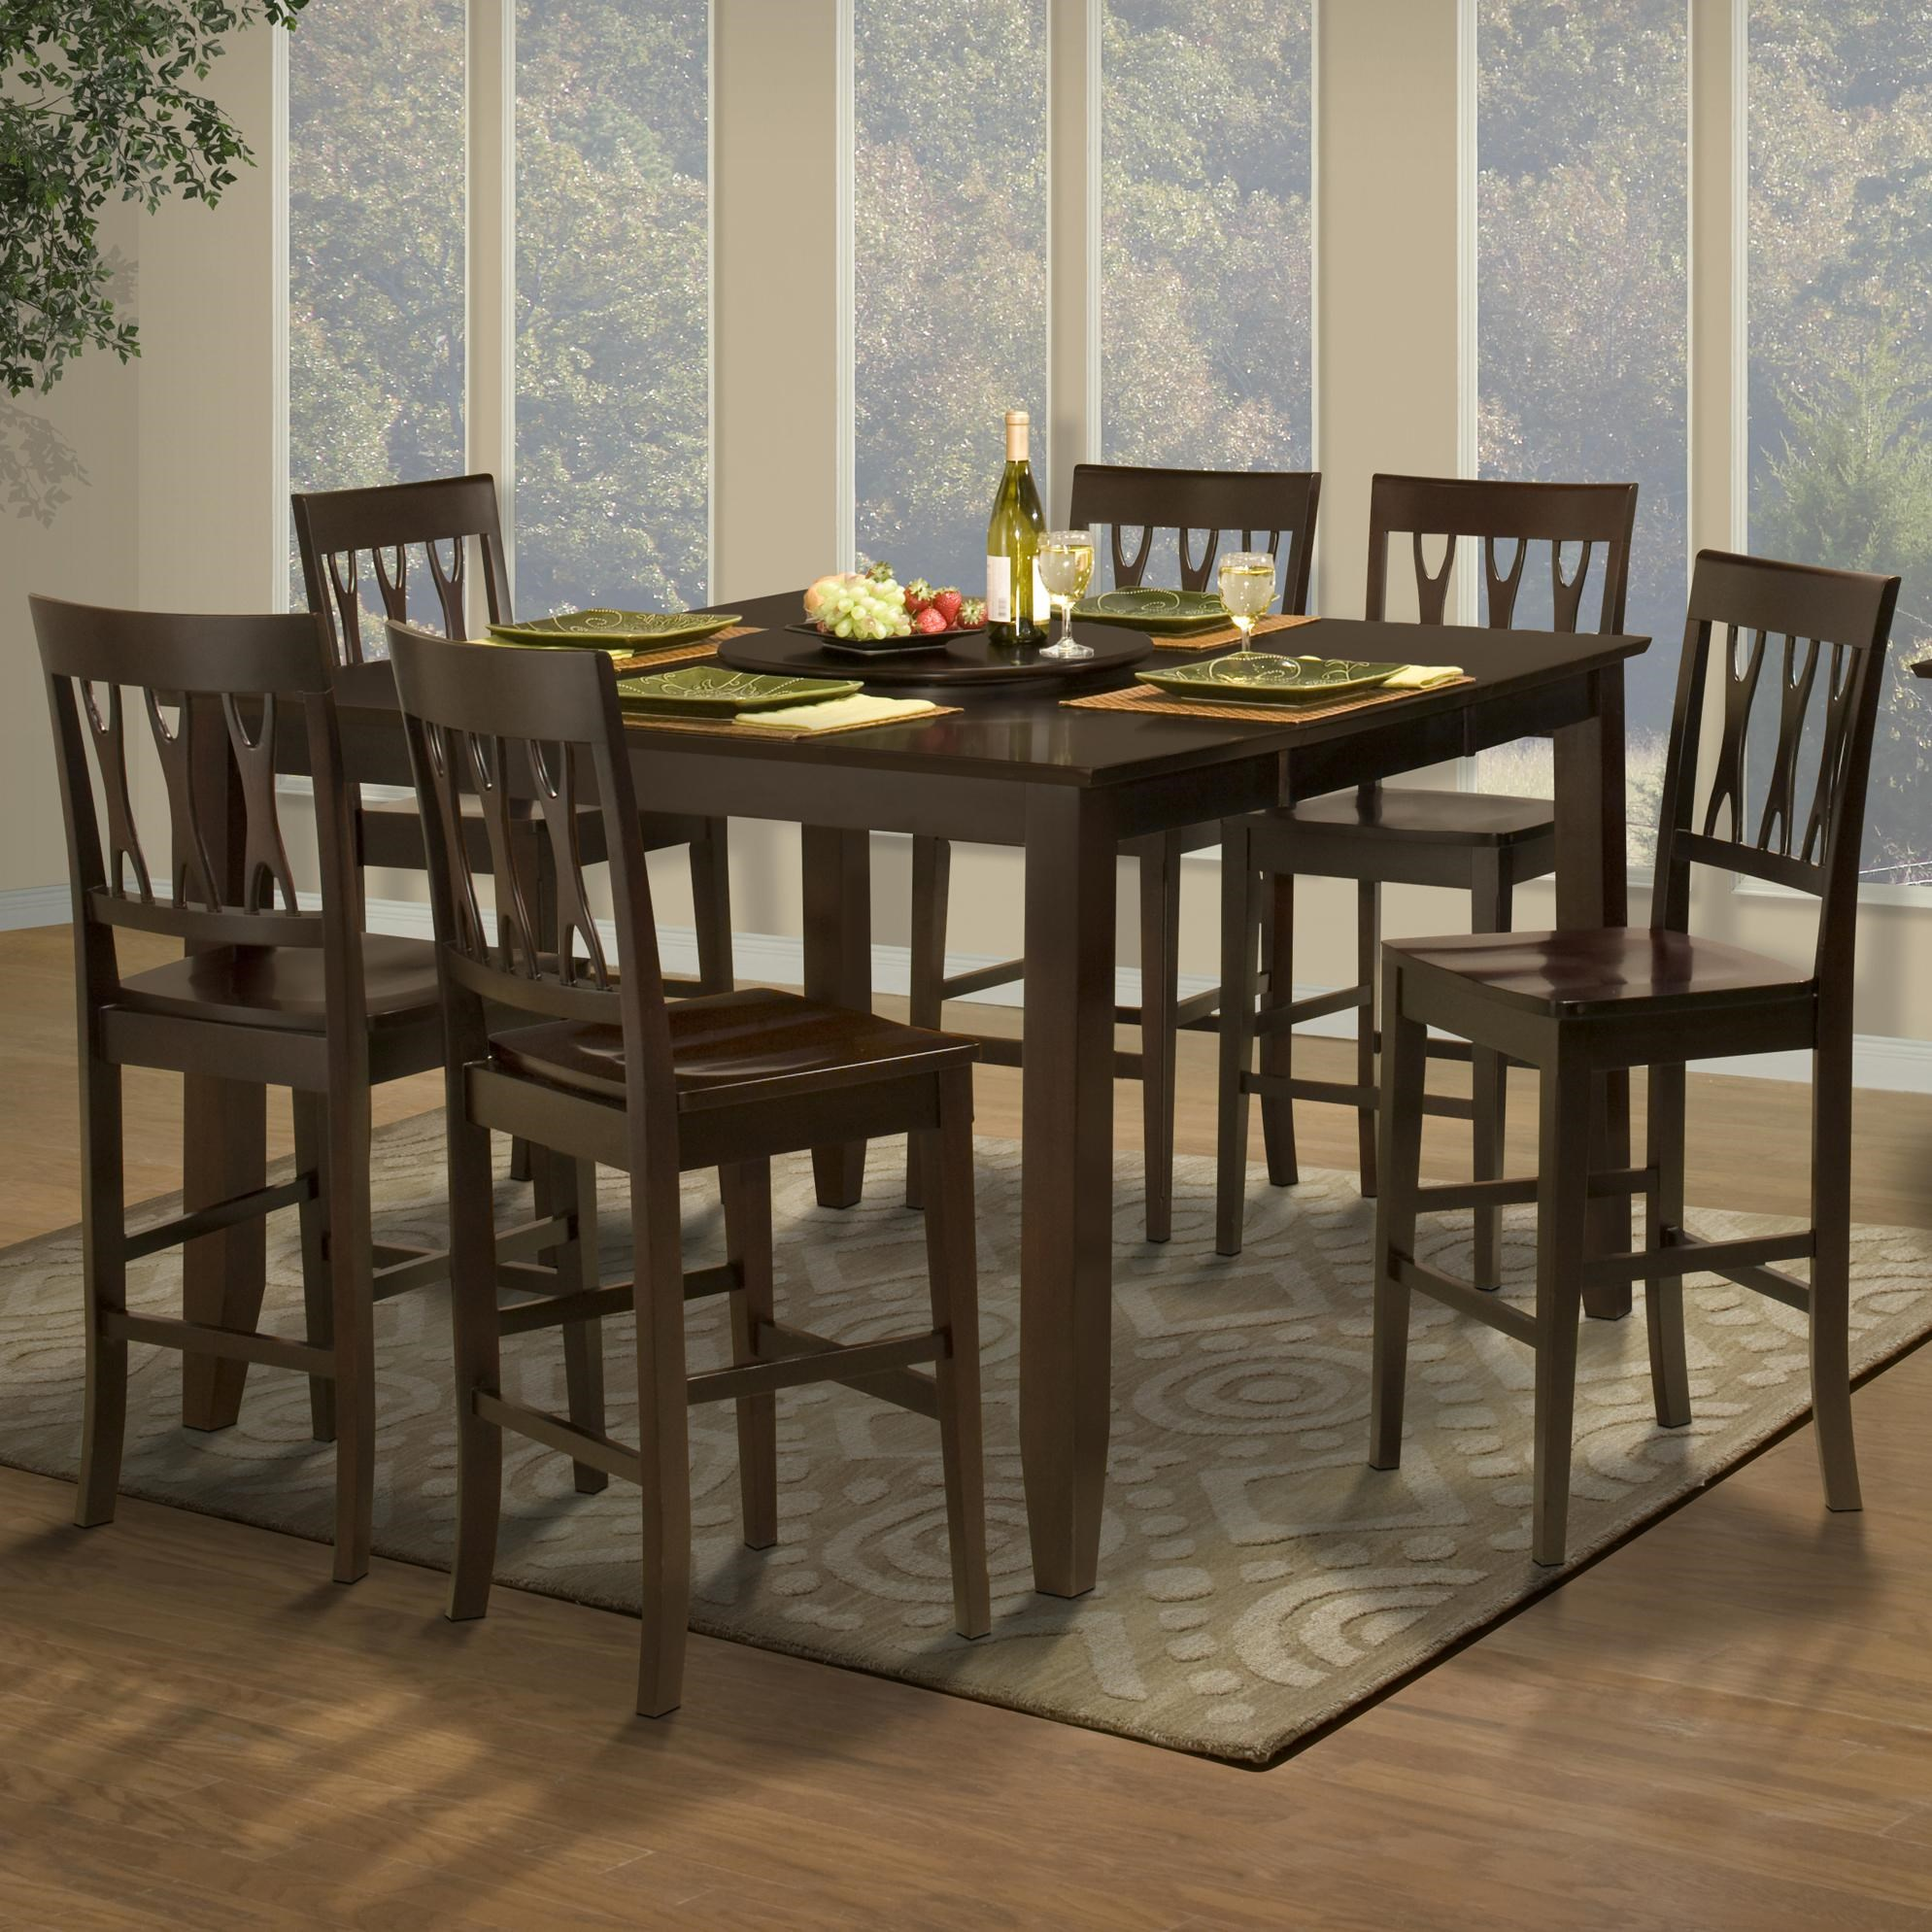 Charmant New Classic Style 19 7 Piece Counter Height Table And All Wood Abbie Chair  Set